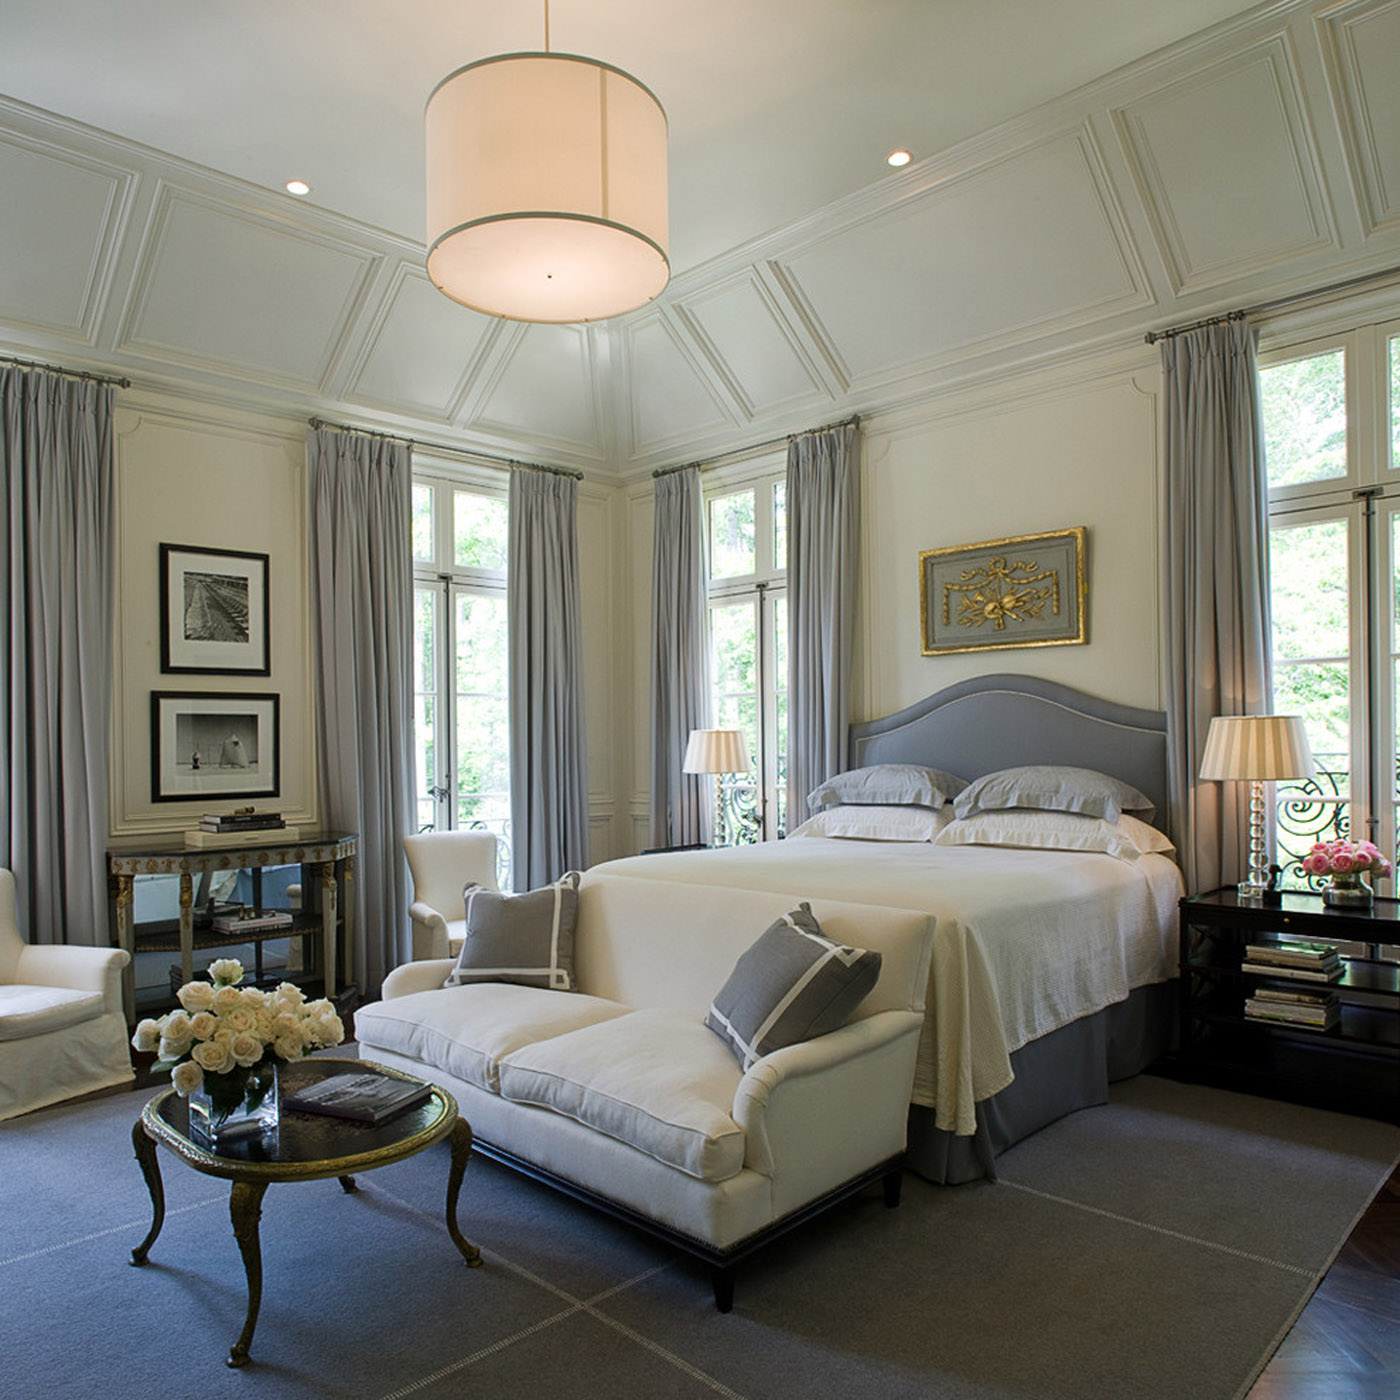 BEDROOMS THAT INSPIRE on country style bedroom ideas, primitive country decorating ideas, french decorating ideas for bedrooms, french country bedding, french country drapes and curtains, french country house decorating, country french master bedroom ideas, french country rooster, french country kitchen, french country foyer ideas, french country bedroom wallpaper, french country headboards, french country bedroom blue, french country home interior, french country bedroom paint, french shabby sheek decorating ideas, french country prints, french country decorating style, victorian decorating ideas, rustic bedroom ideas,